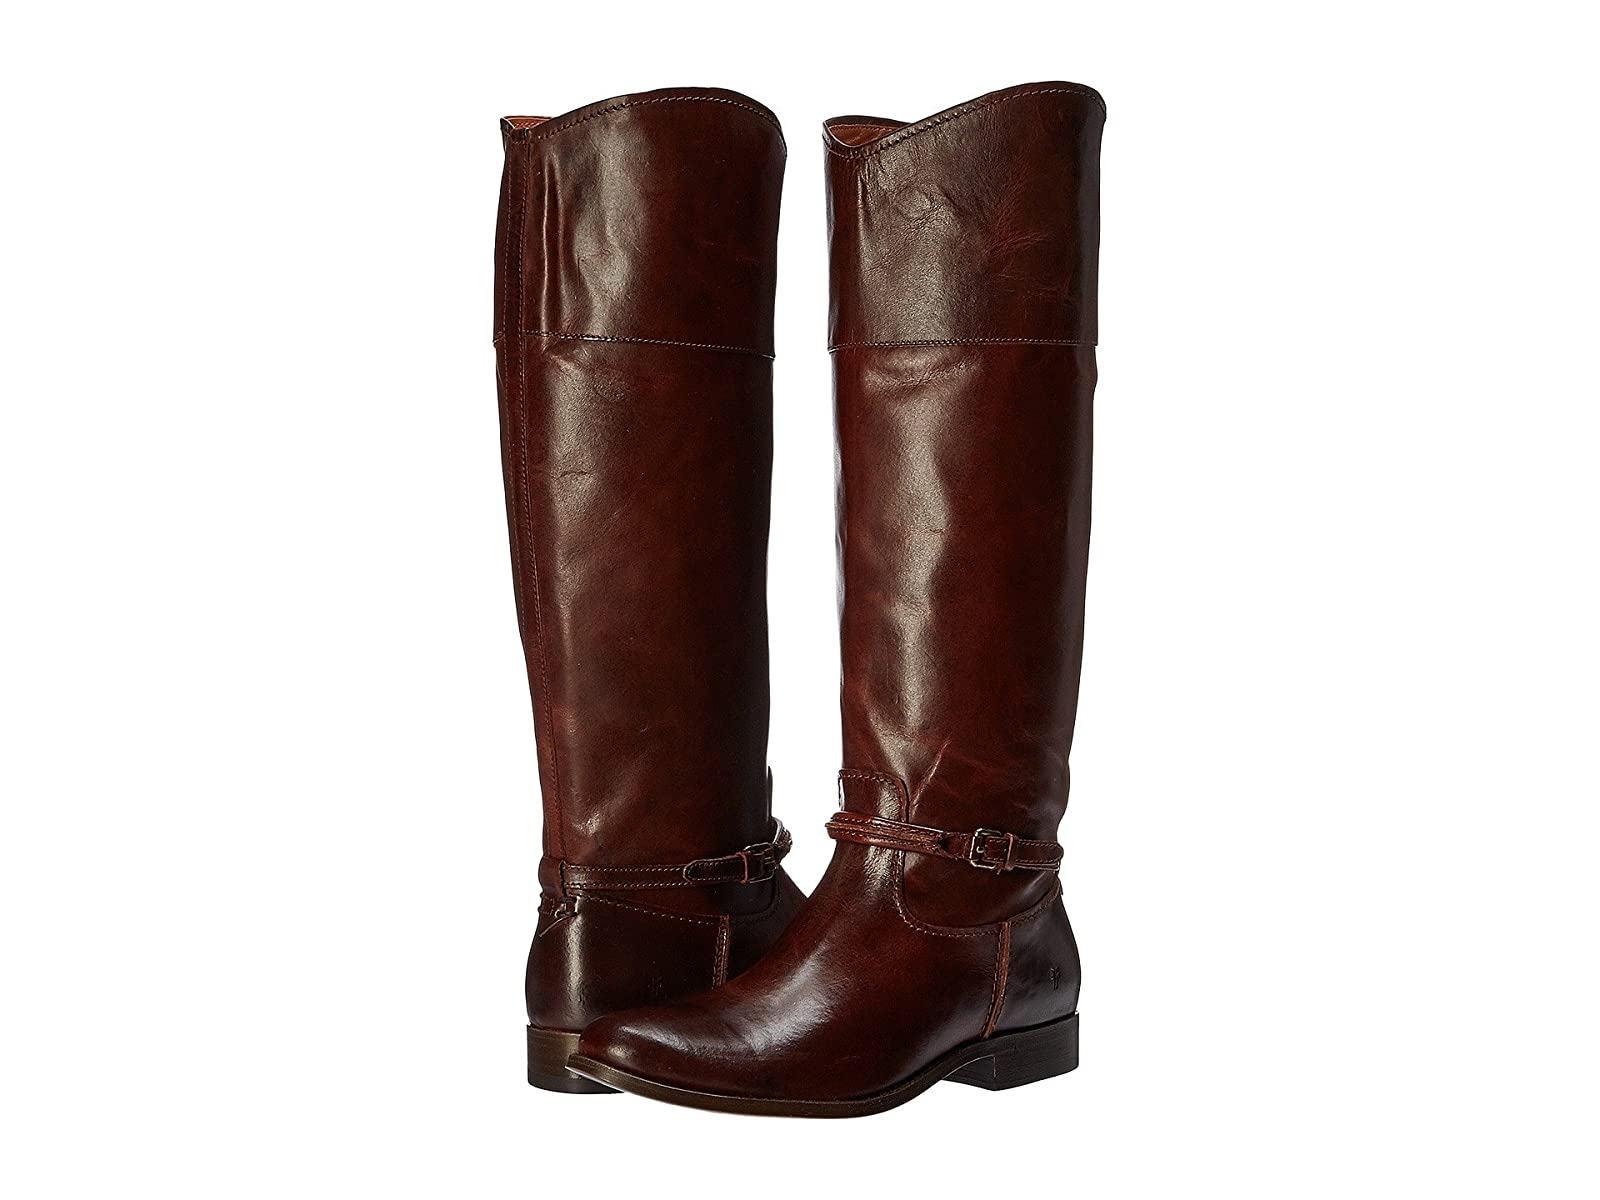 Frye Melissa Seam TallAffordable and distinctive shoes